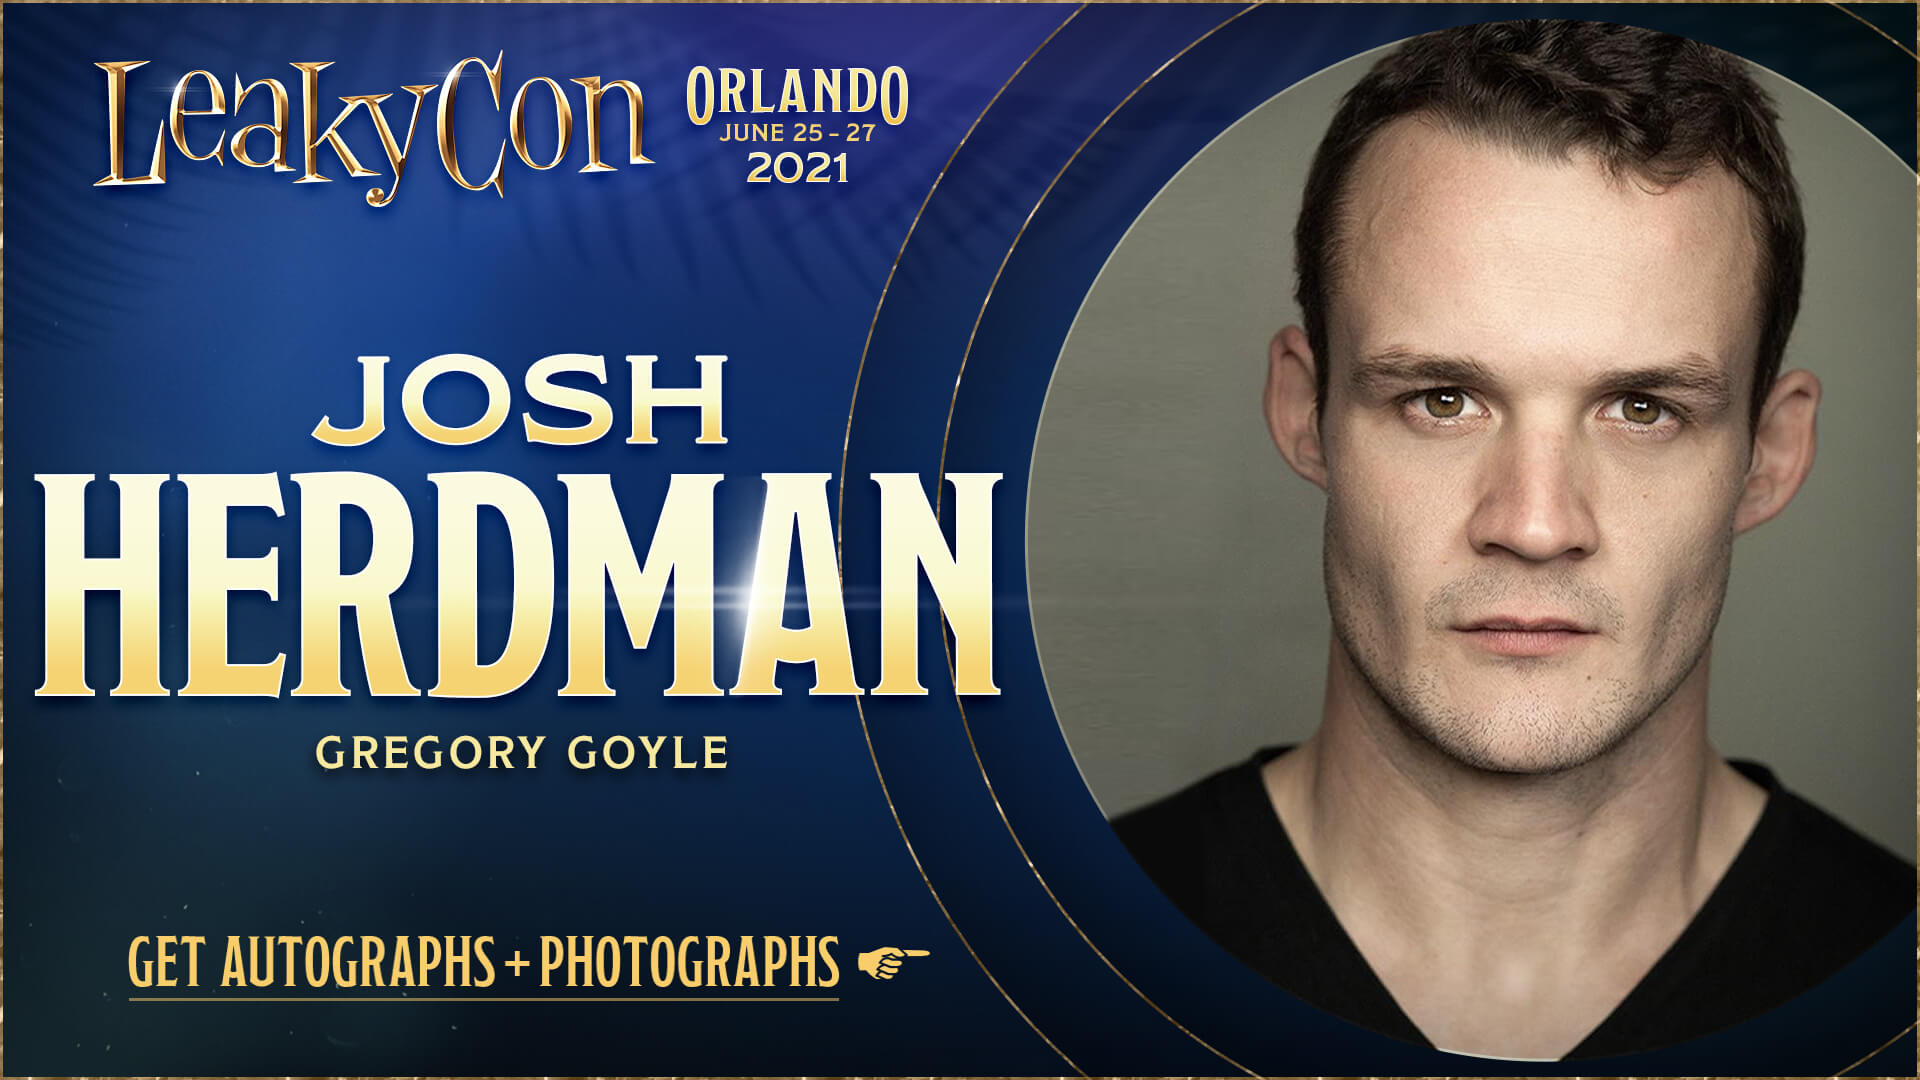 Welcome Josh Herdman to LeakyCon Orlando 2021!